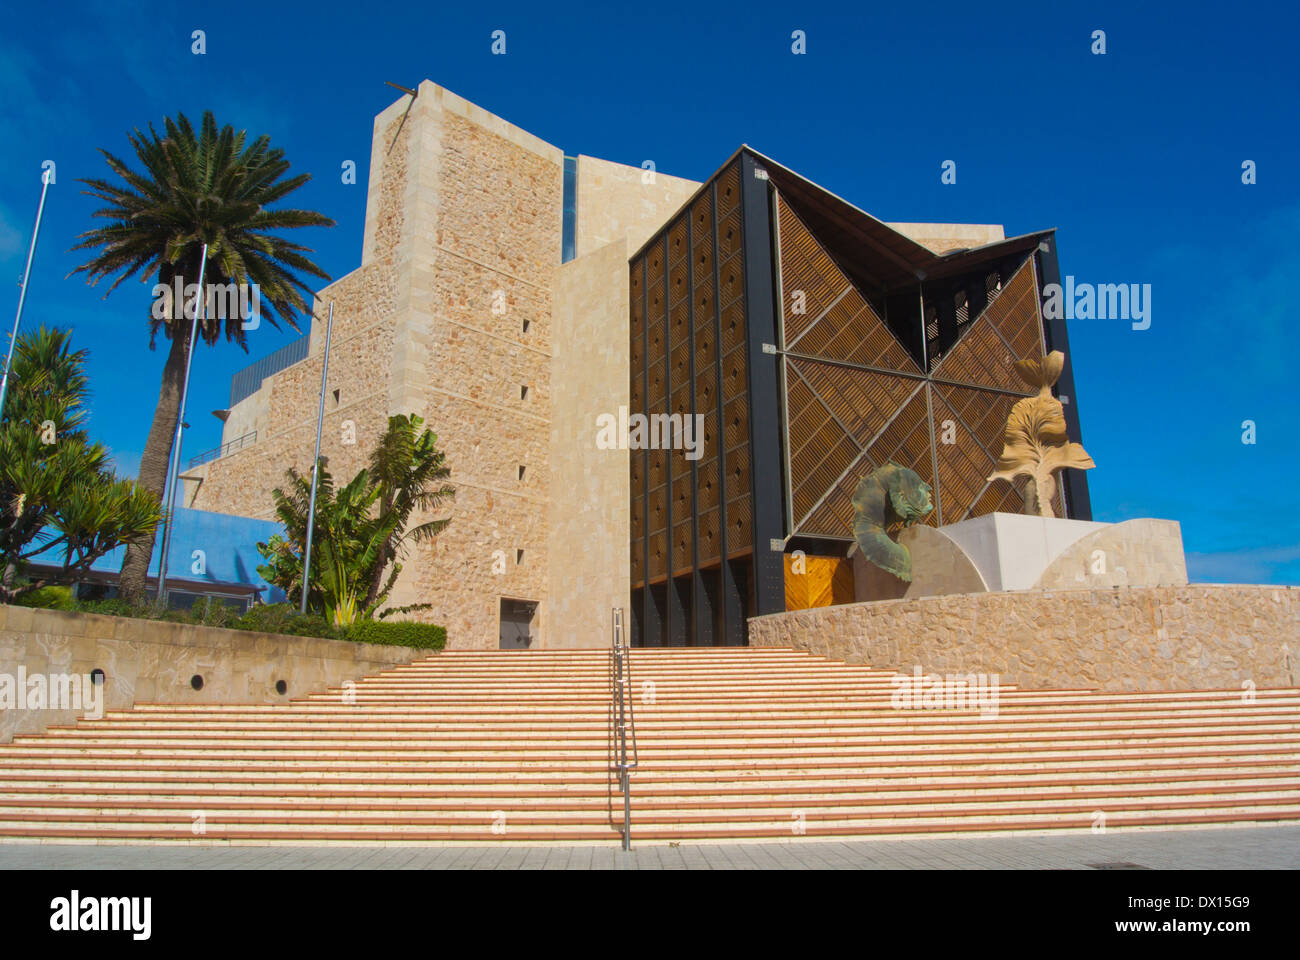 Auditorio alfredo kraus concert hall las palmas de gran canaria stock photo 67638489 alamy - Alfredo kraus auditorio ...